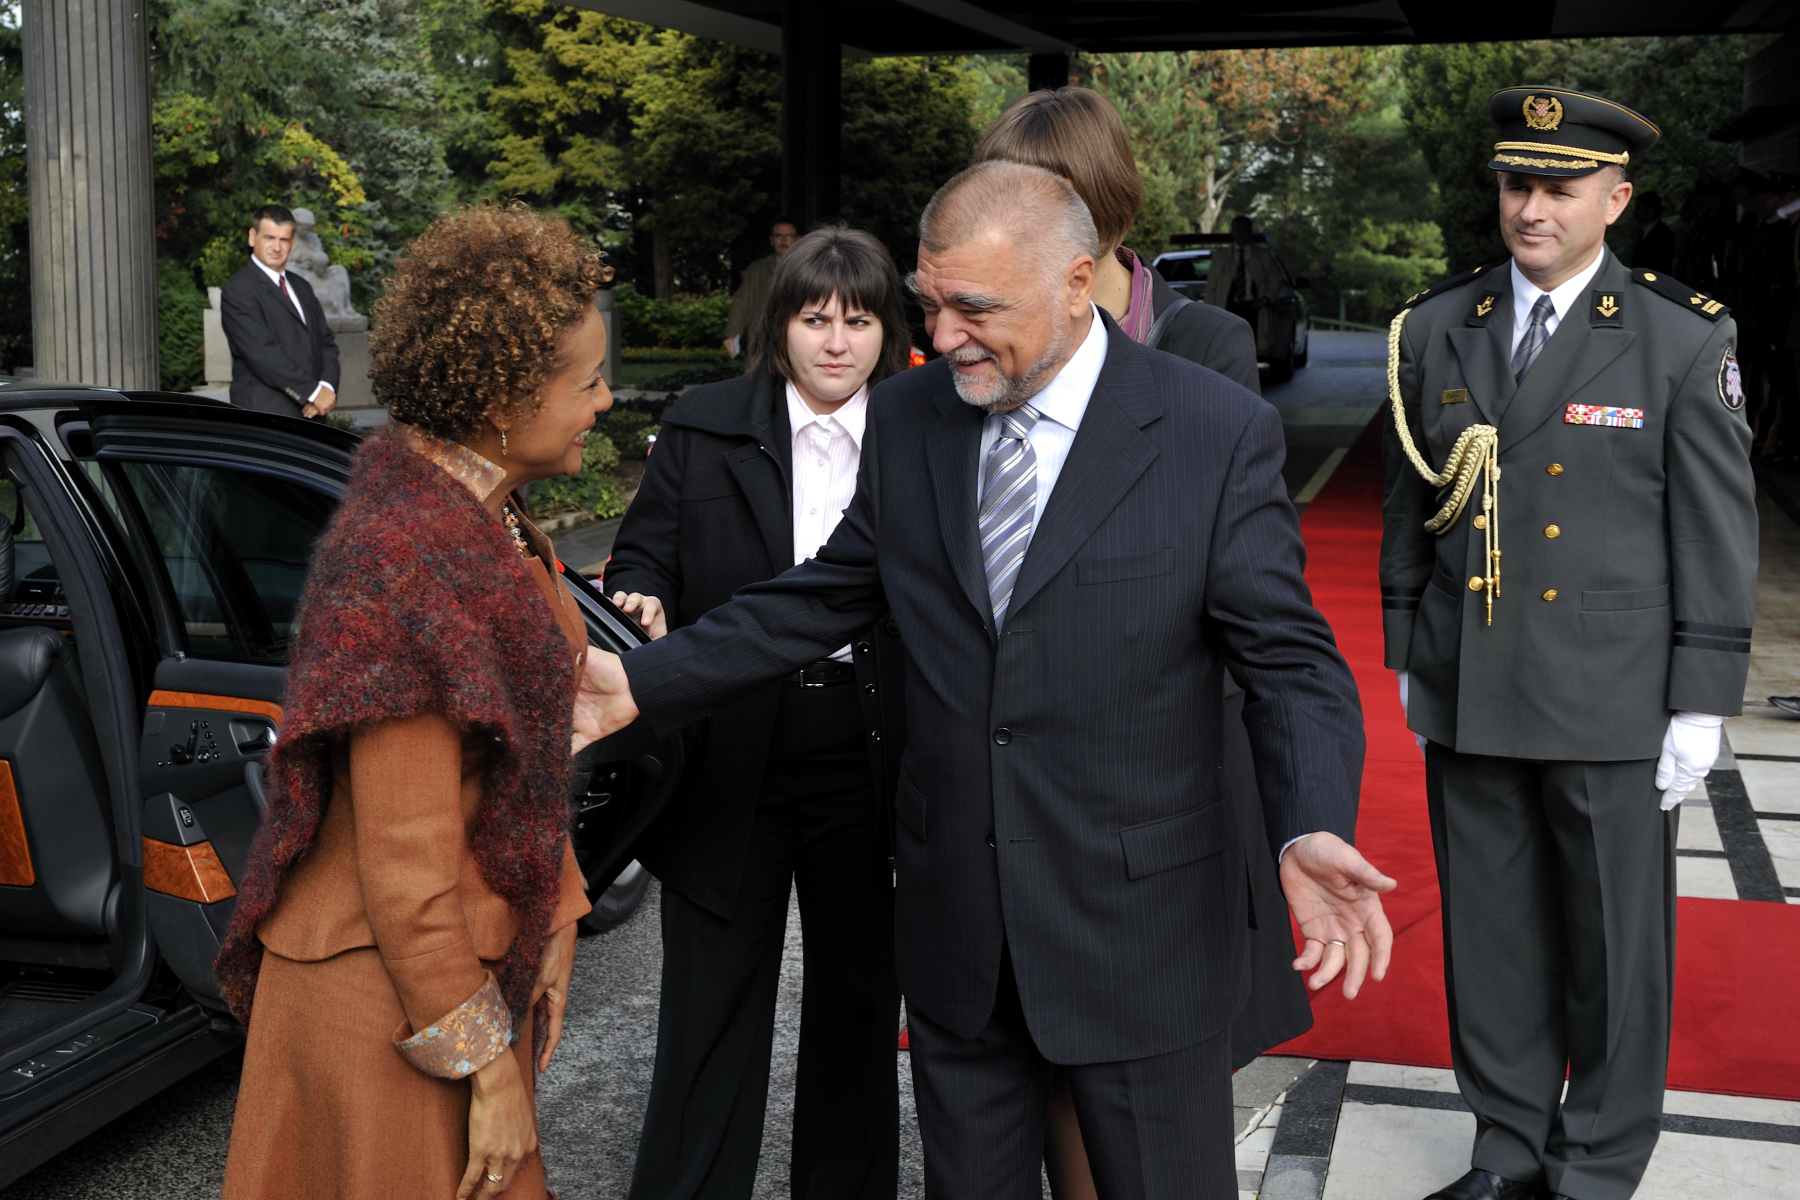 His Excellency Stjepan Mesić, President of the Republic of Croatia, welcomed the Governor General.